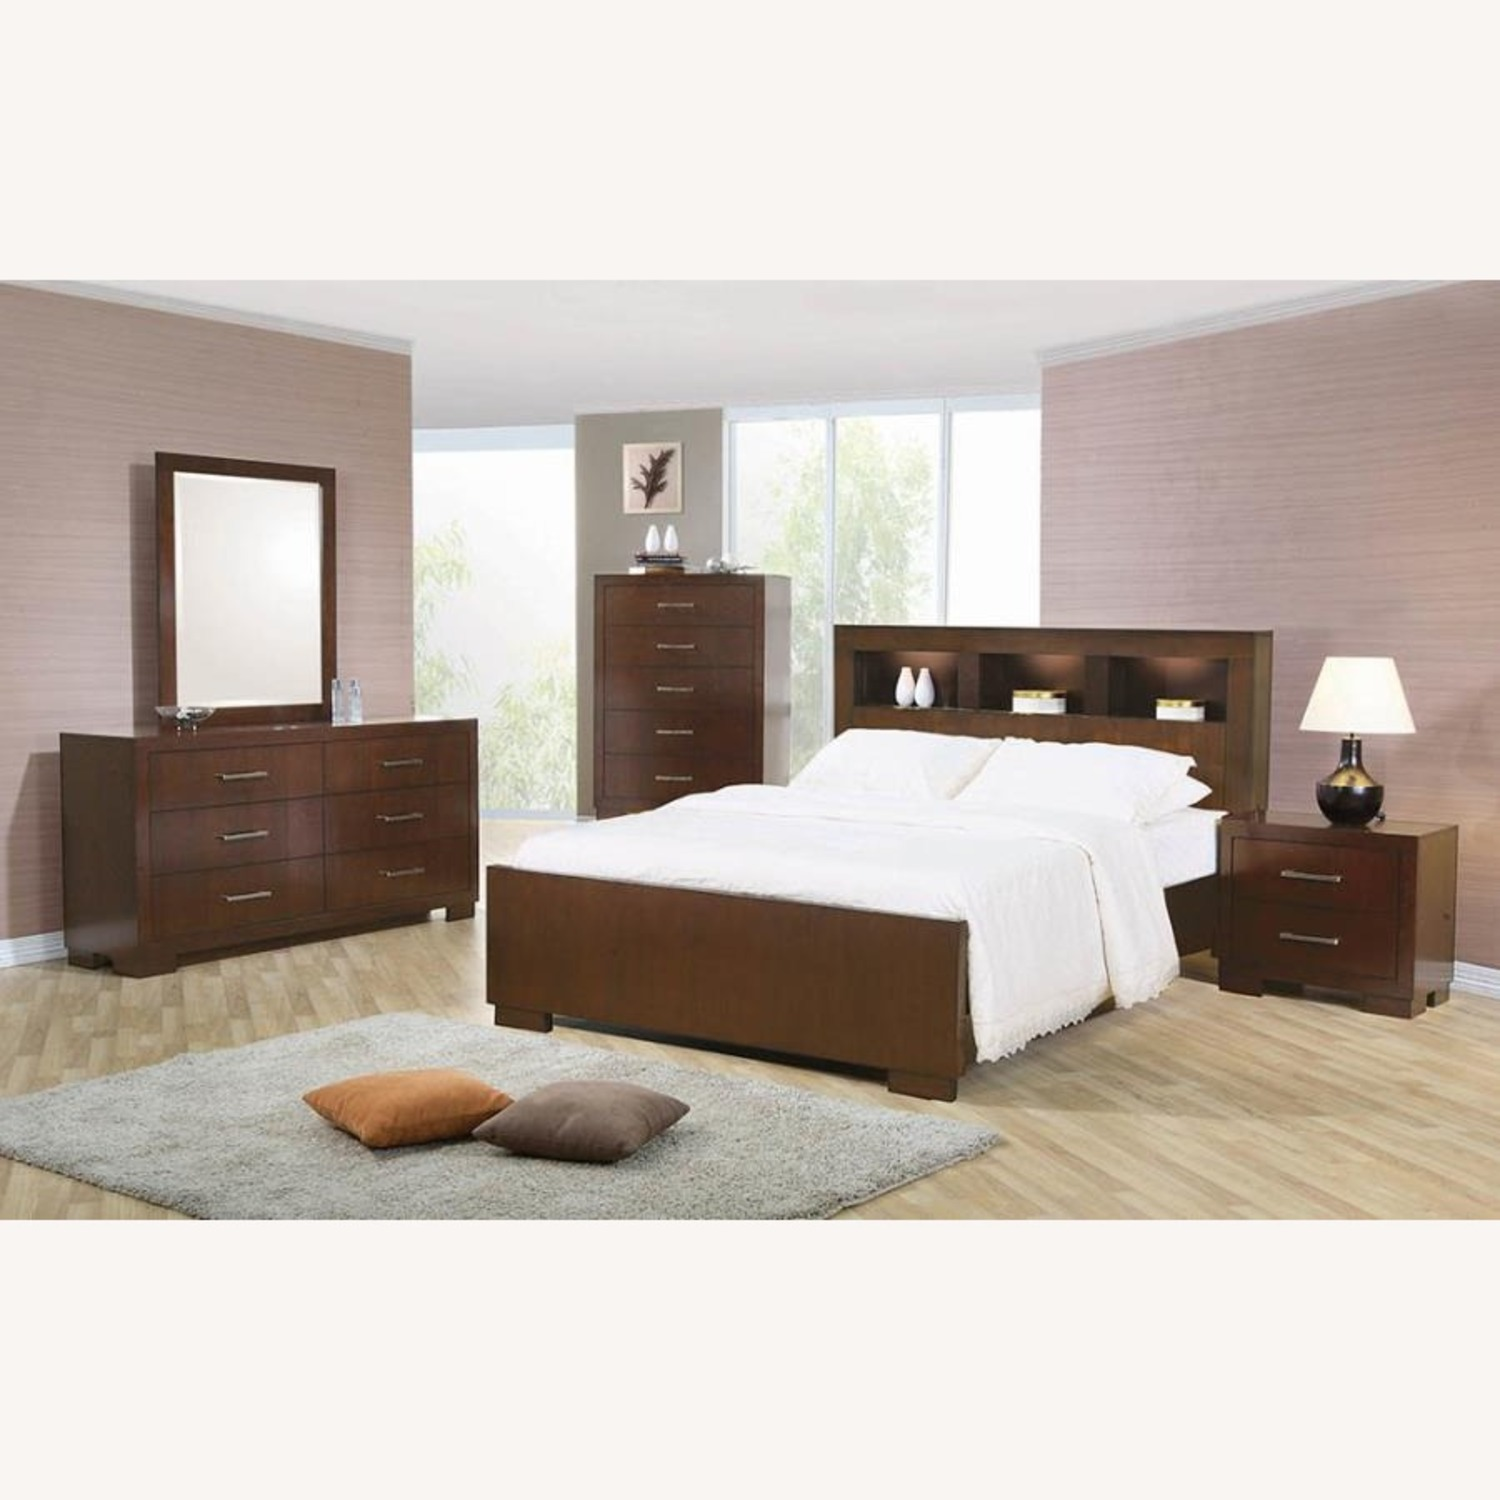 Queen Bed In Cappuccino W/ Bookcase Headboard - image-1